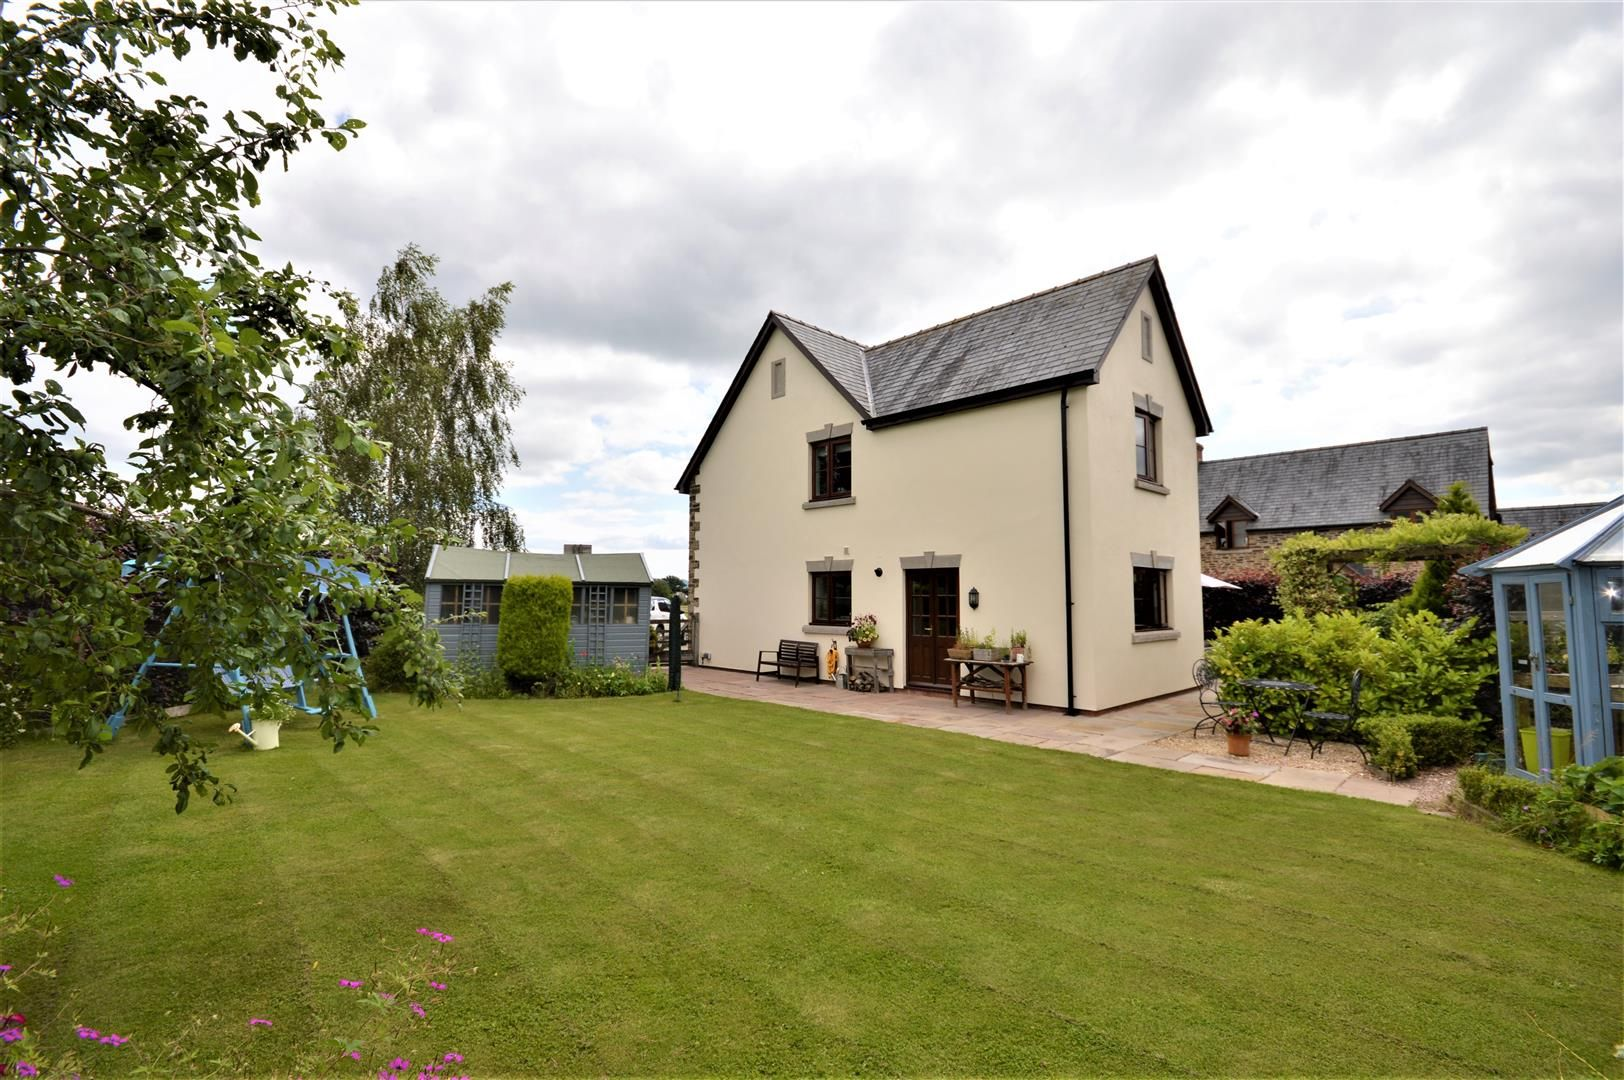 4 bed detached for sale in Eardisley  - Property Image 2